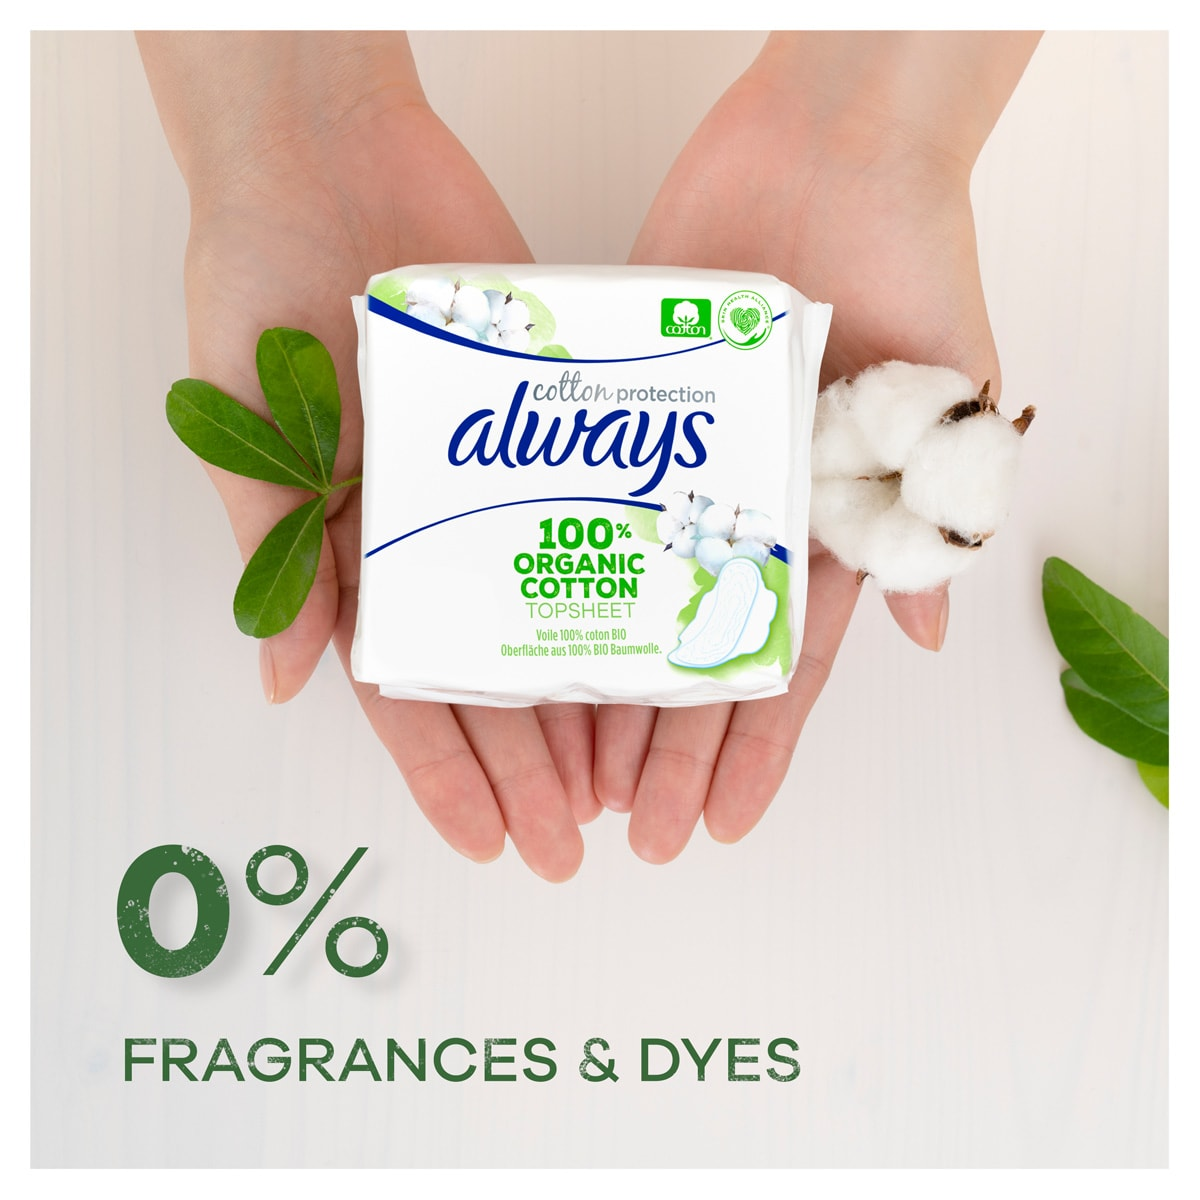 0% Fragrances and dyes